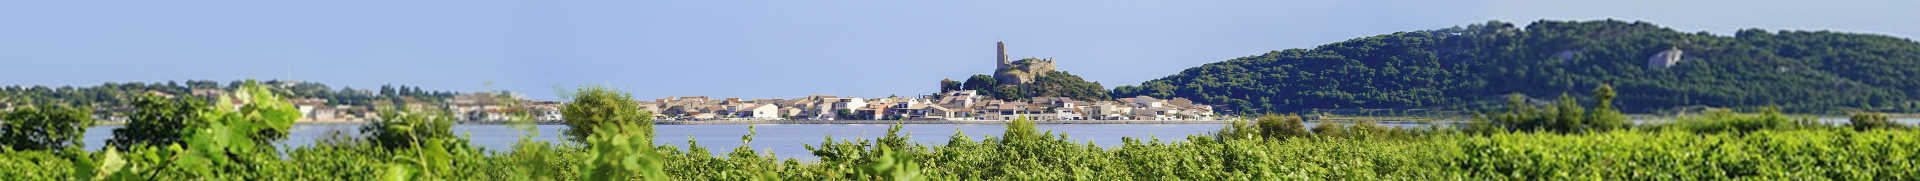 Image for Languedoc Wine South of France content section